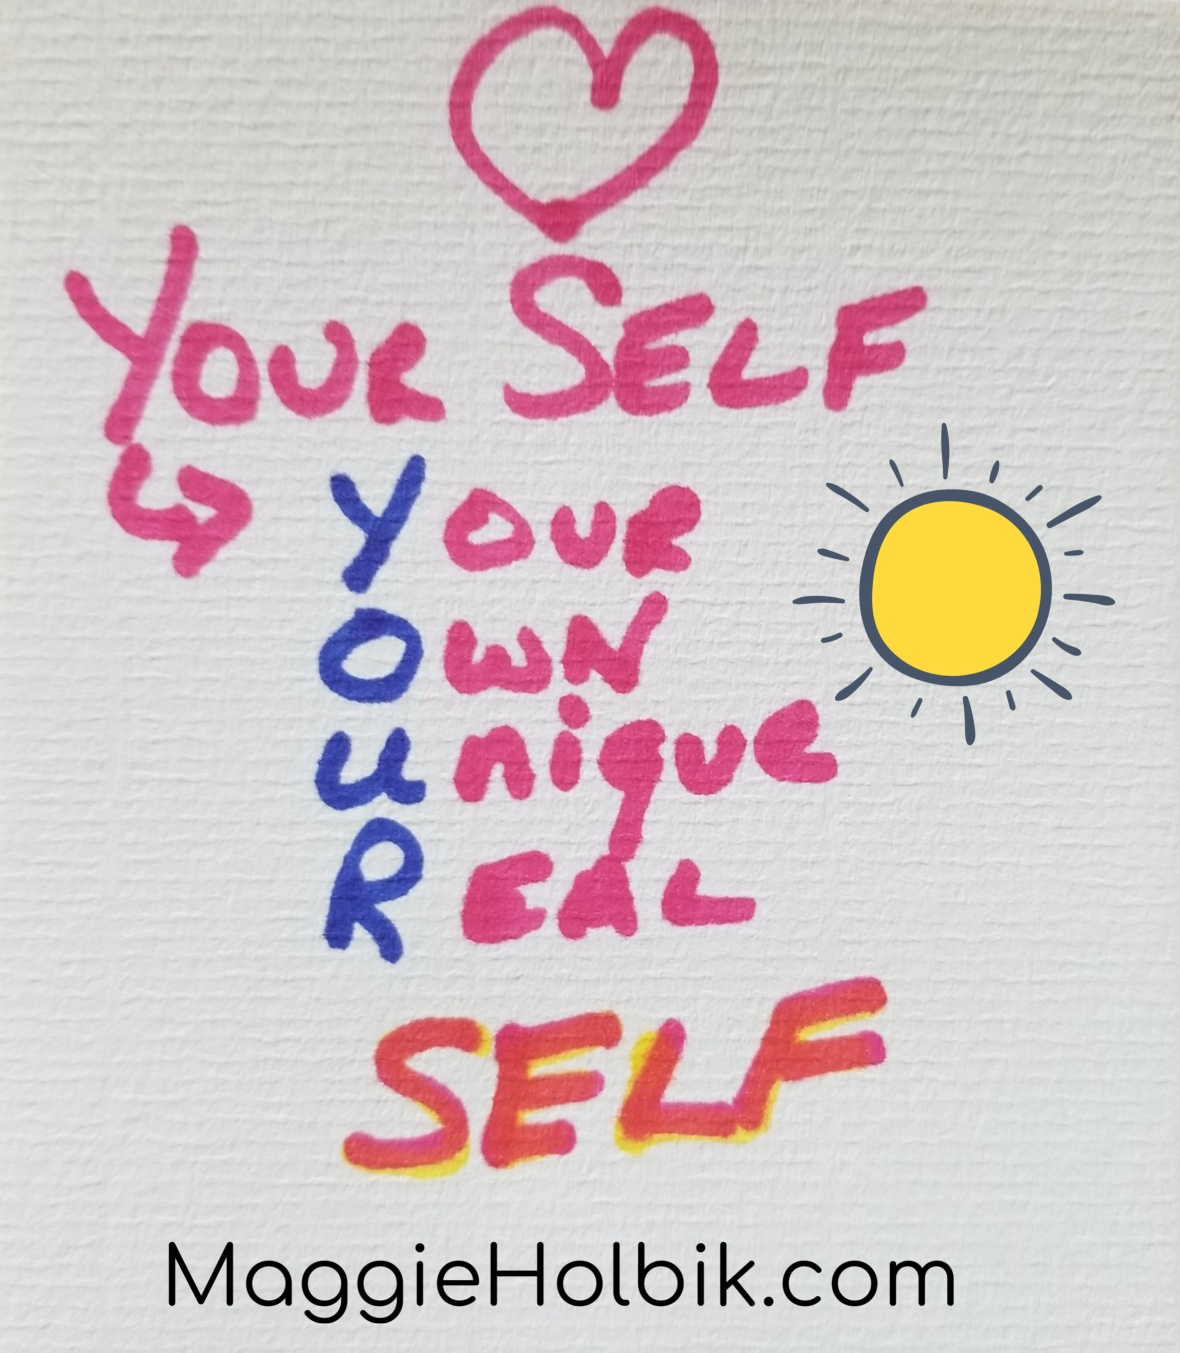 Be Yourself by Maggie Holbik.com